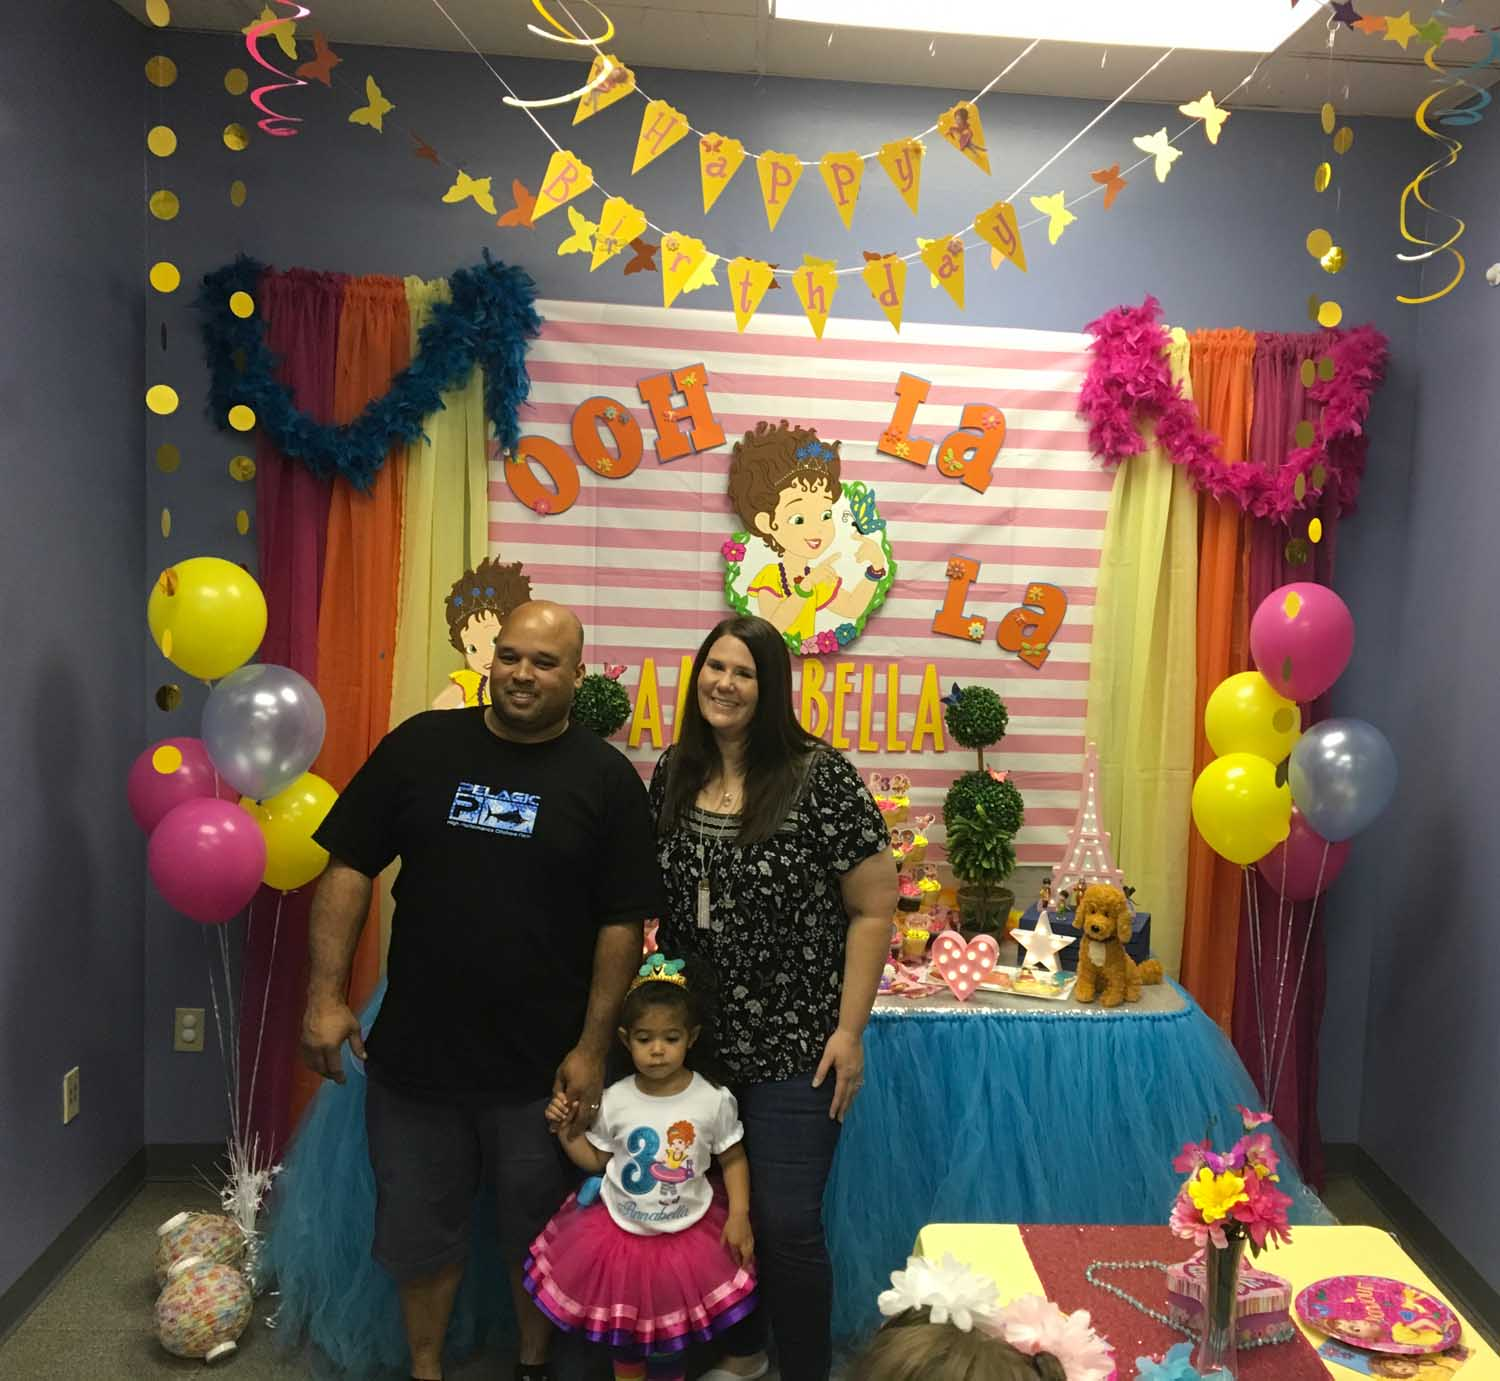 princess-birthday-party-venue-orlando.jpg